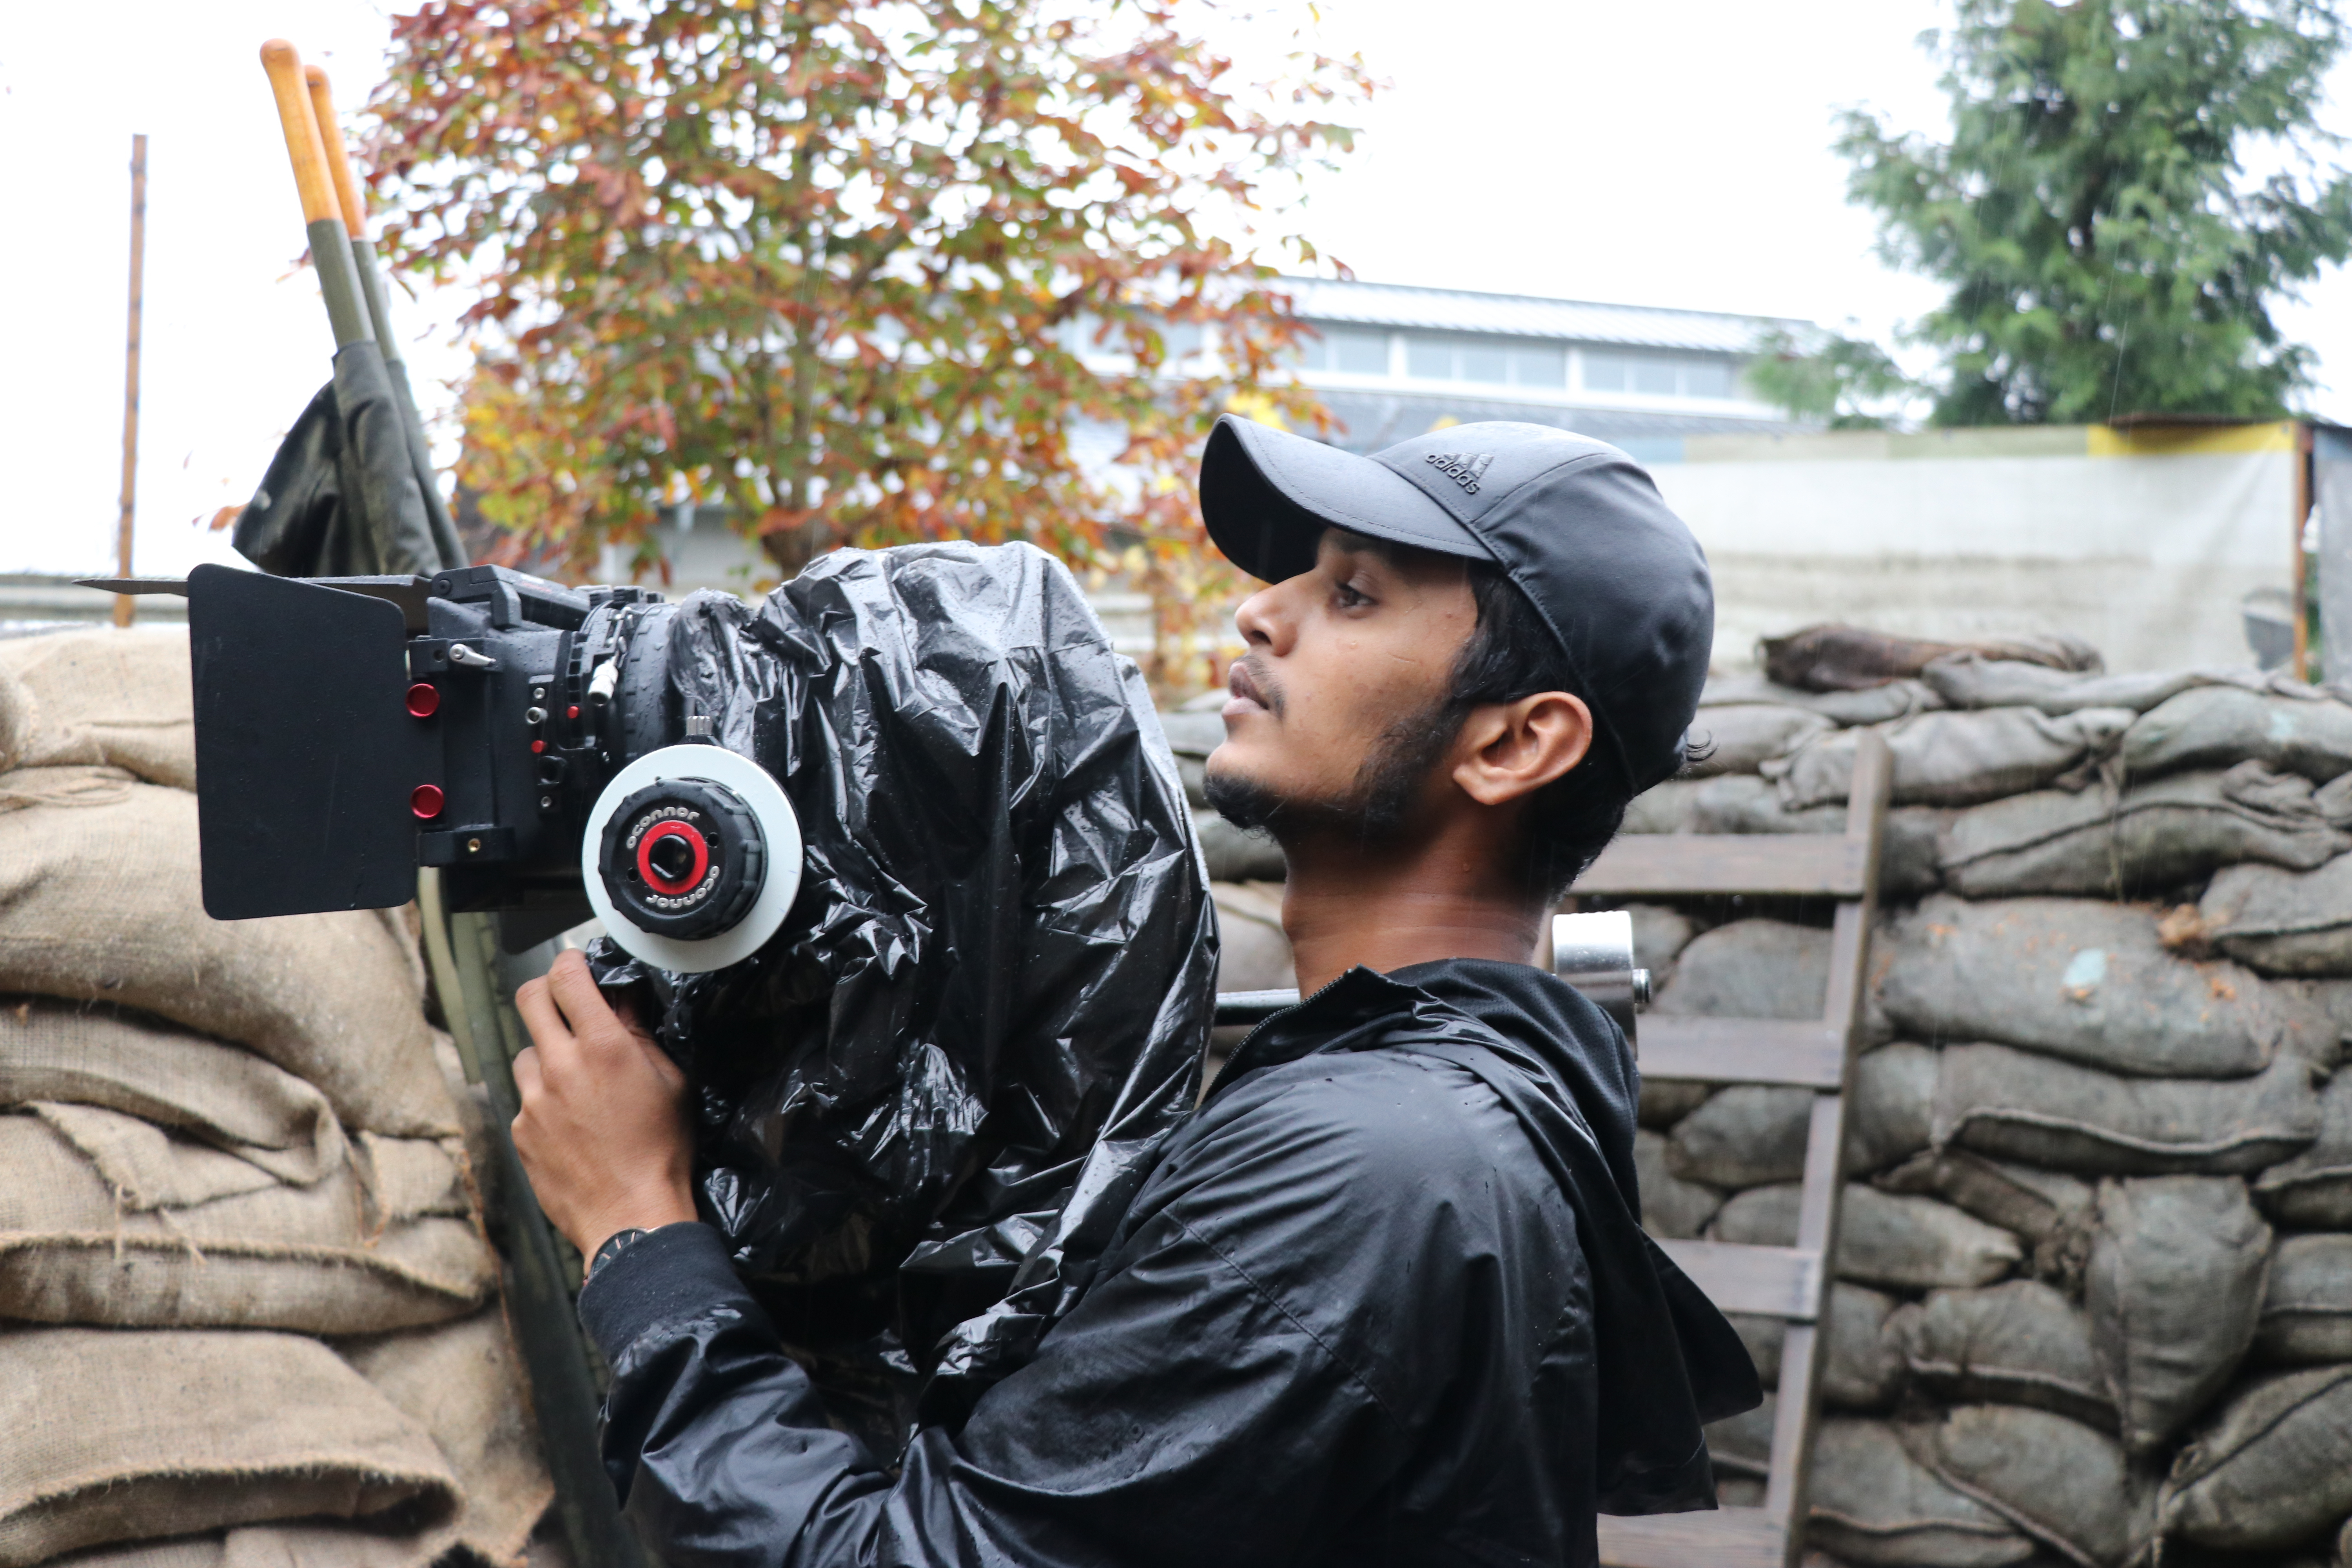 Shooting the film has brought back memories for Sopithan Rajeswaran of growing up in wartorn Sri Lanka. (Tamara Baluja/CBC)